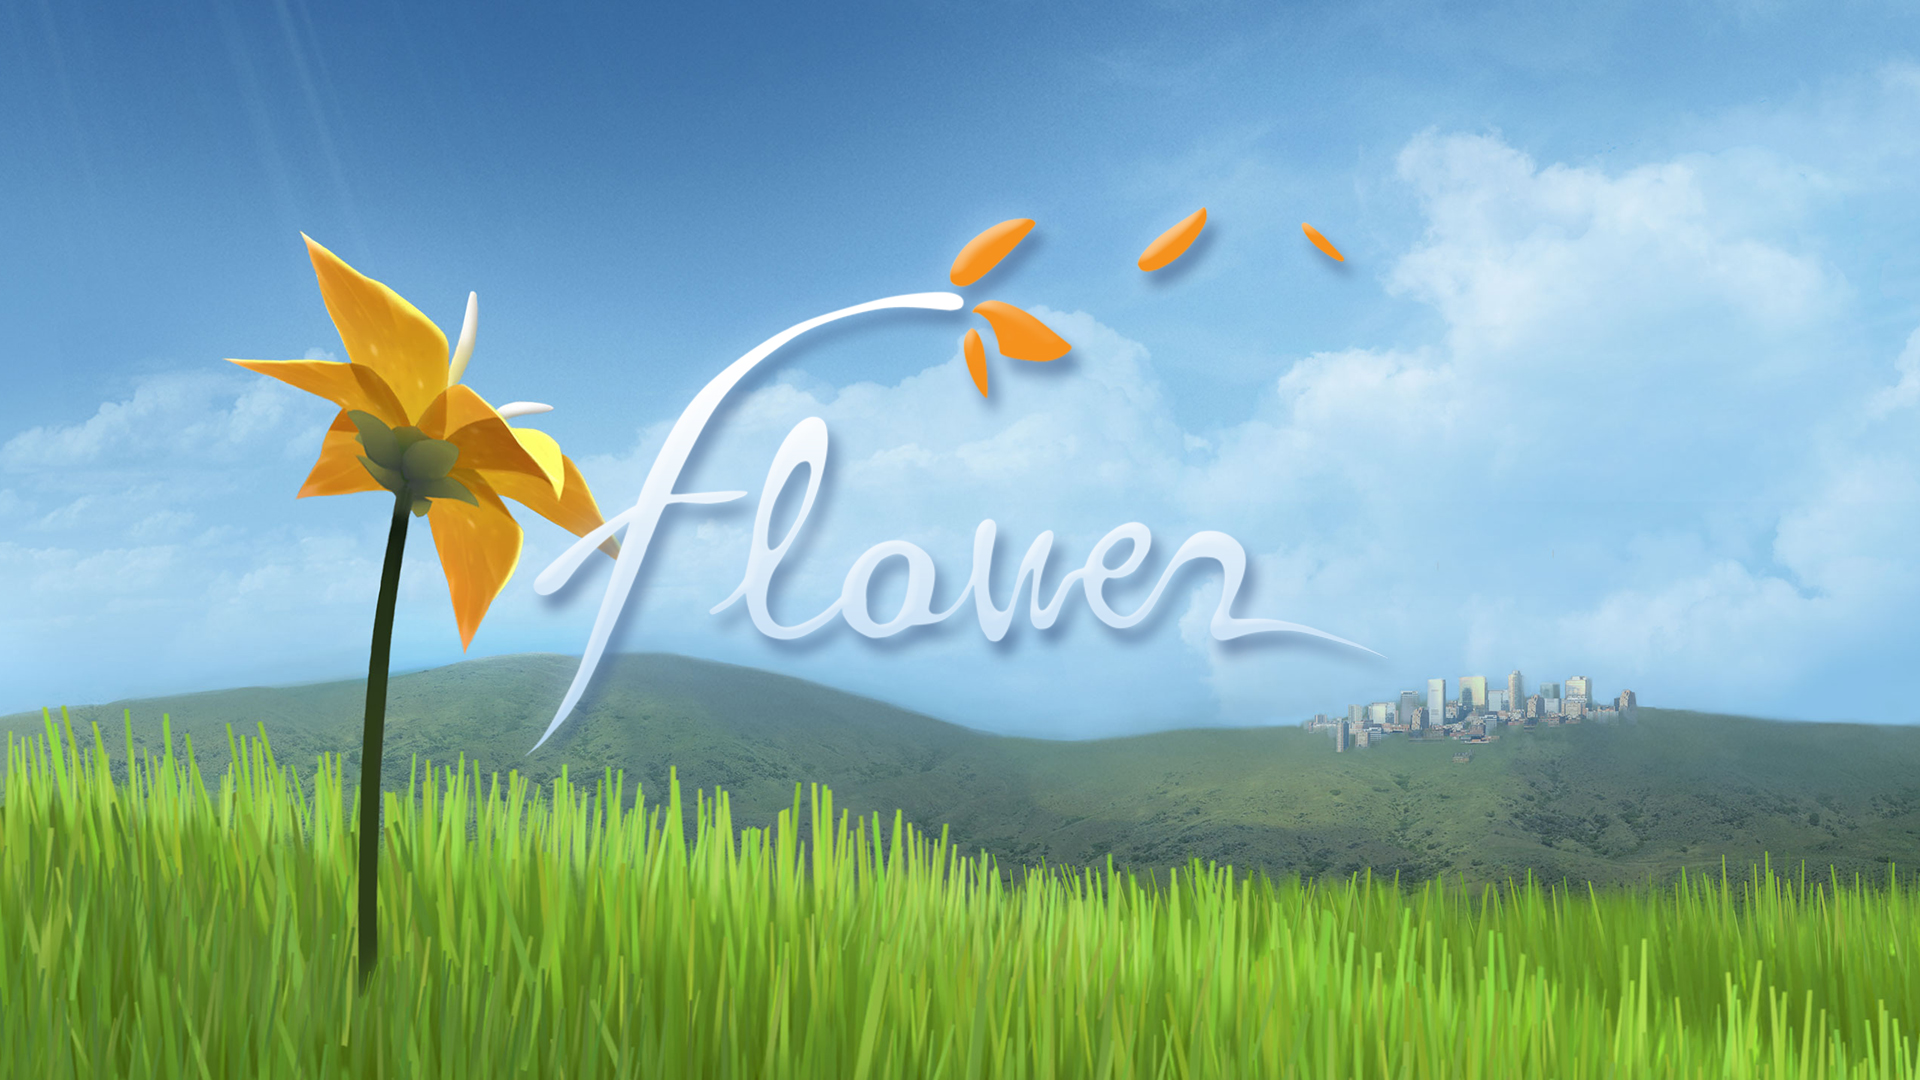 Get Drawn Into The Stunning World of 'Flower'. Now Available For Purchase.